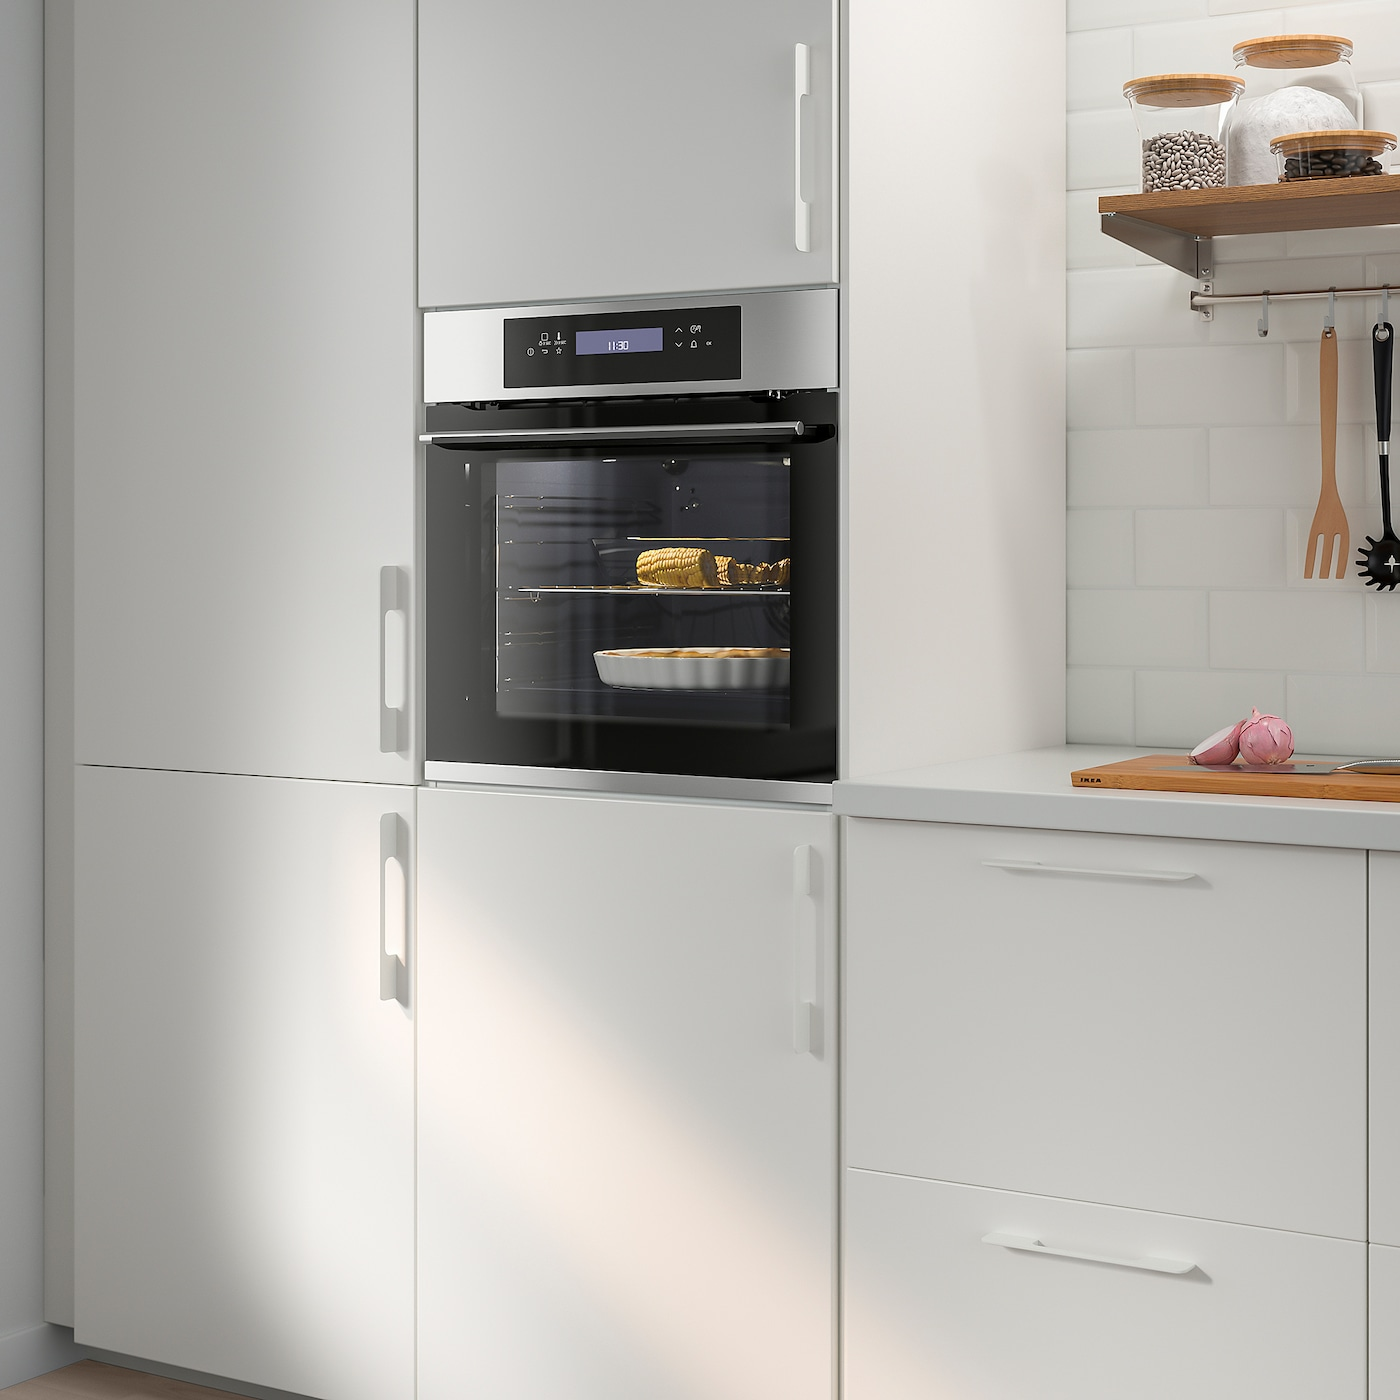 KULINARISK Forced air oven w pyrolytic funct, stainless steel